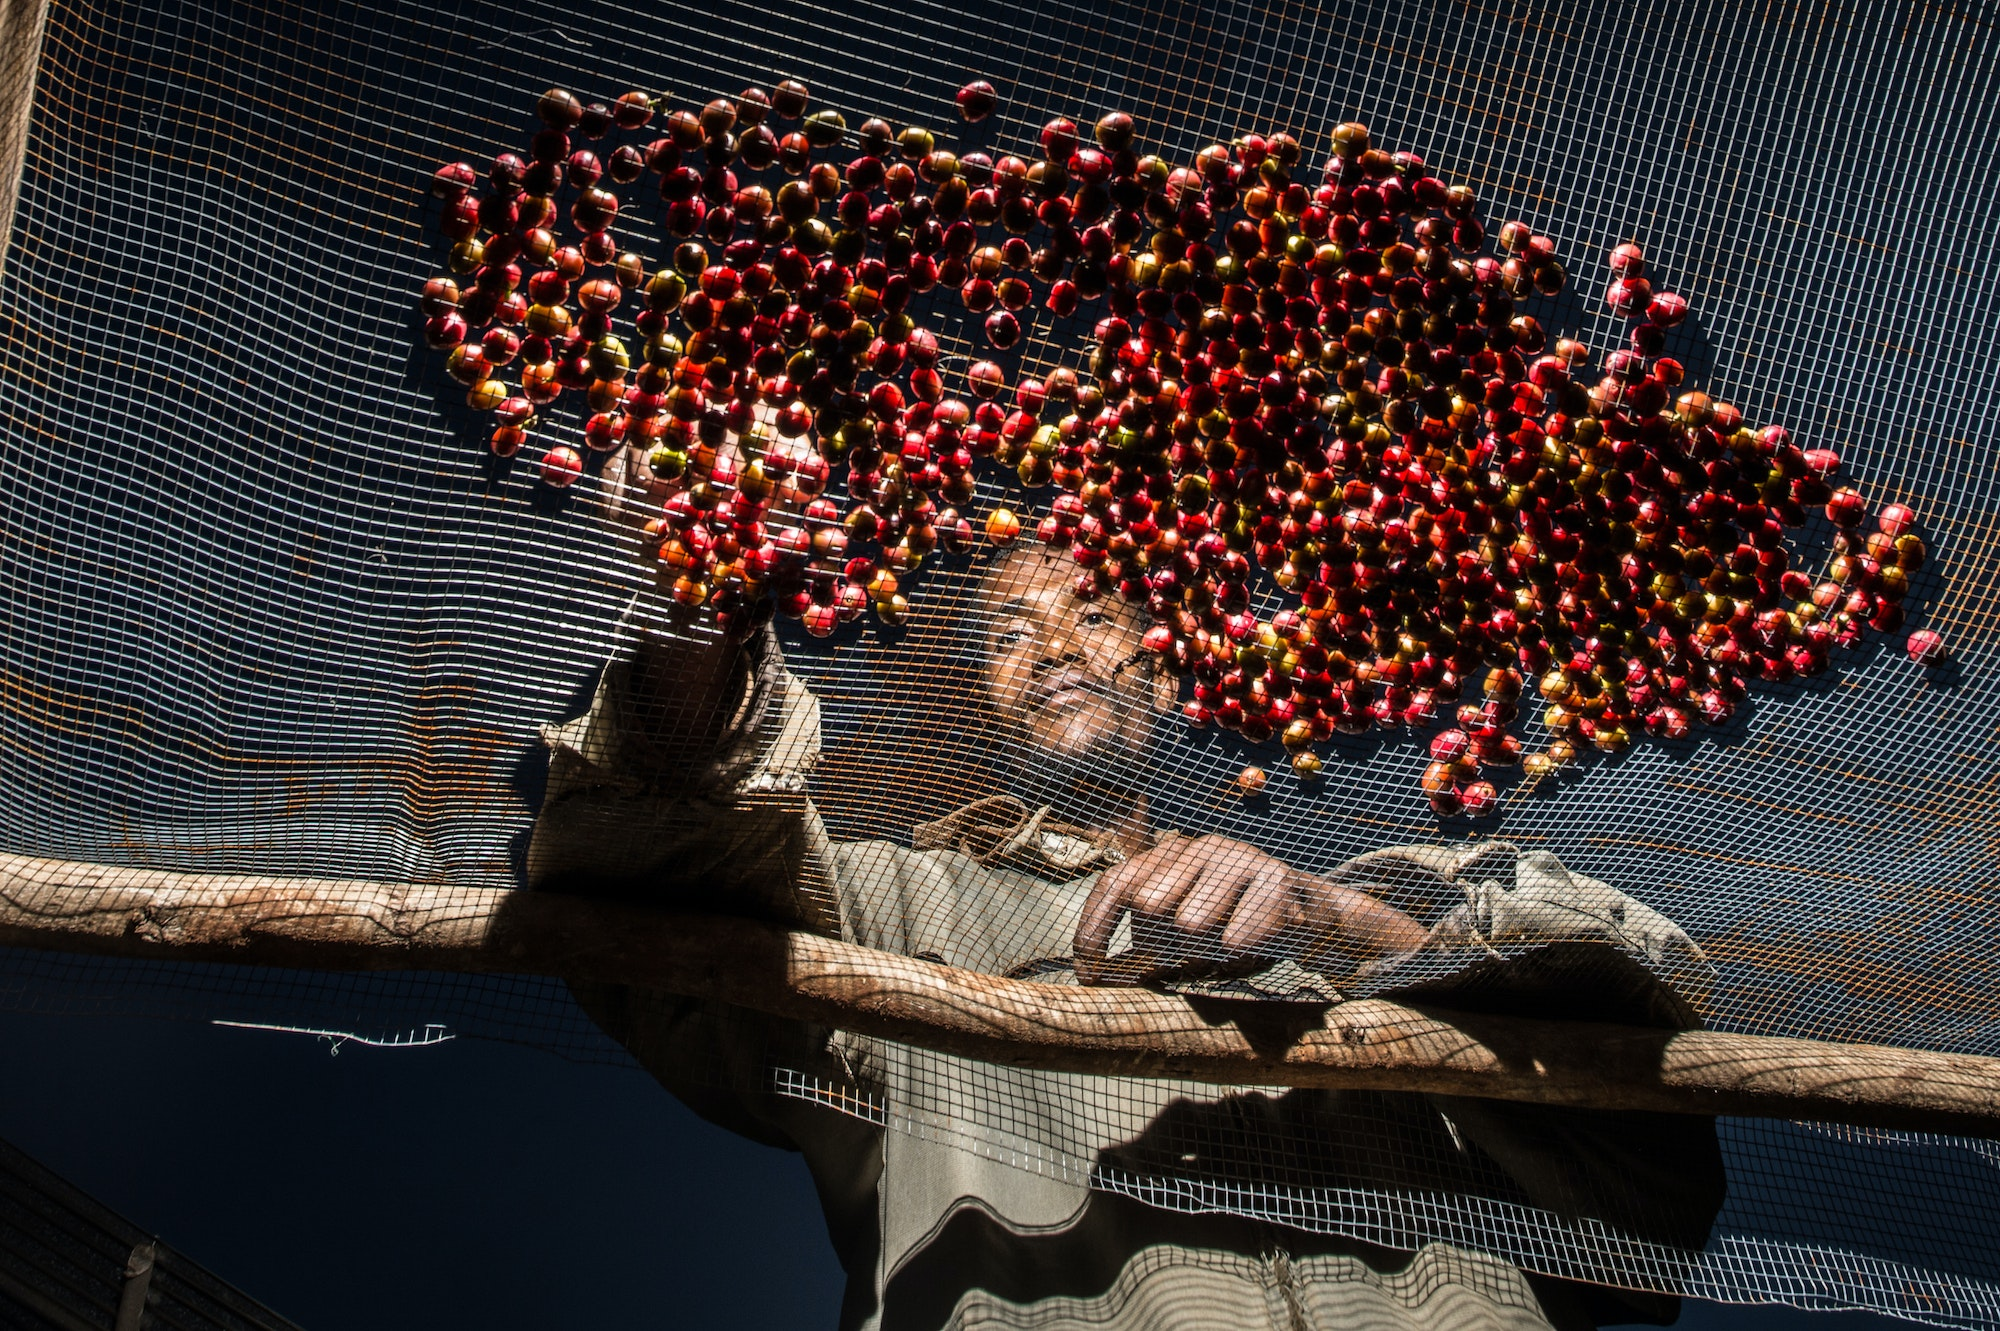 Mohammad Abafita, an Ethopian farmer, sorts cherries that will be processed into coffee beans.